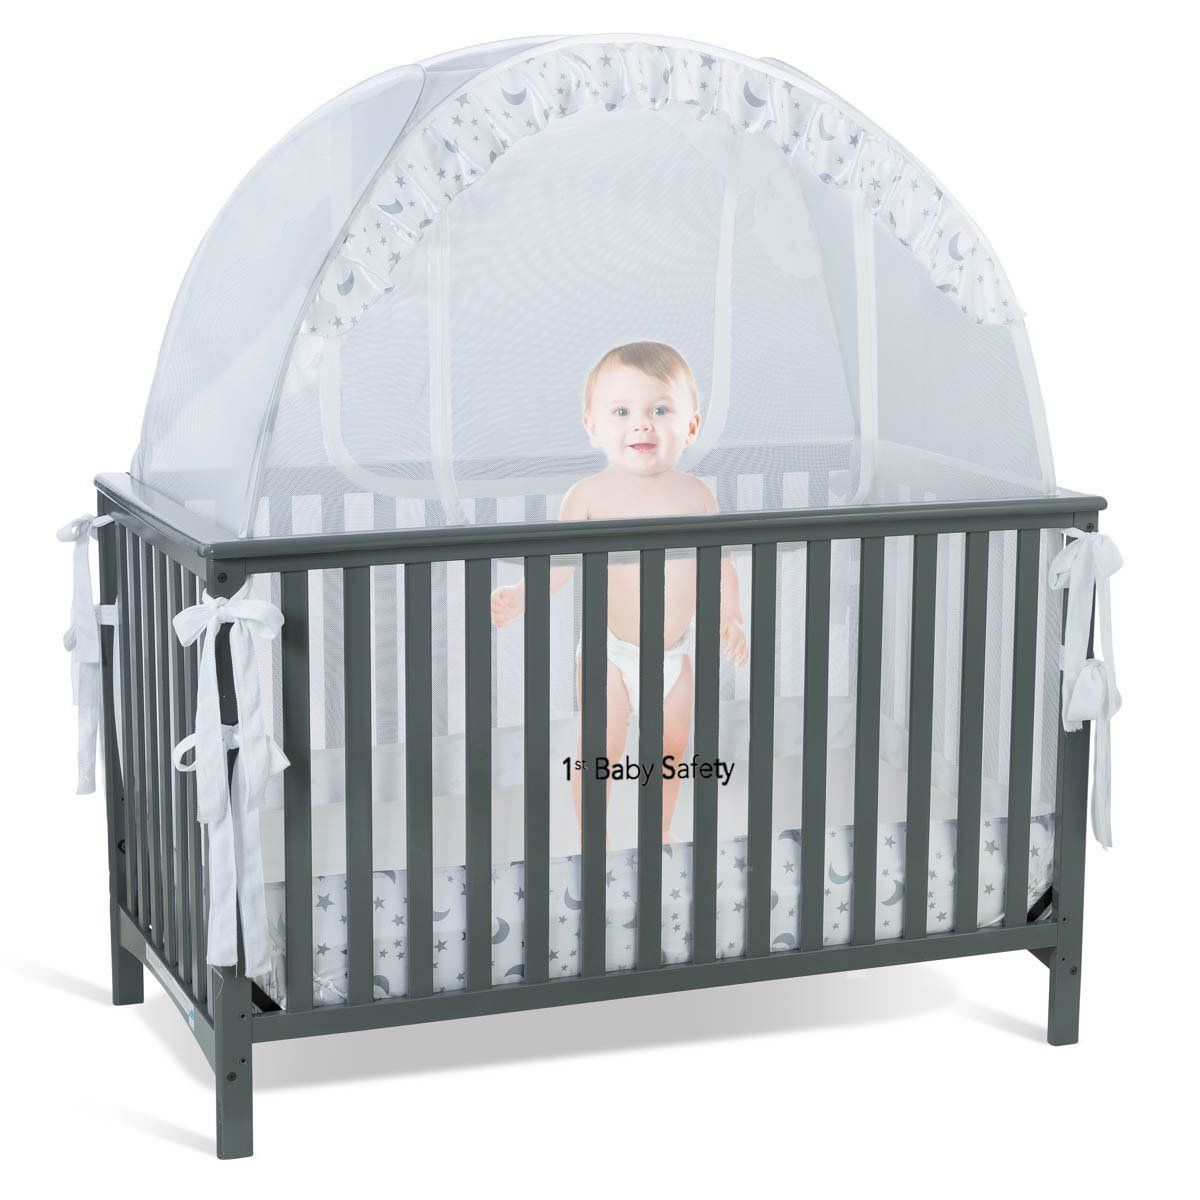 55 How To Keep Cats Out Of Baby Room Best Office Furniture Check More At Http Www Itscultured Com How To Keep Cats Crib Tent Crib Safety Baby Crib Canopy